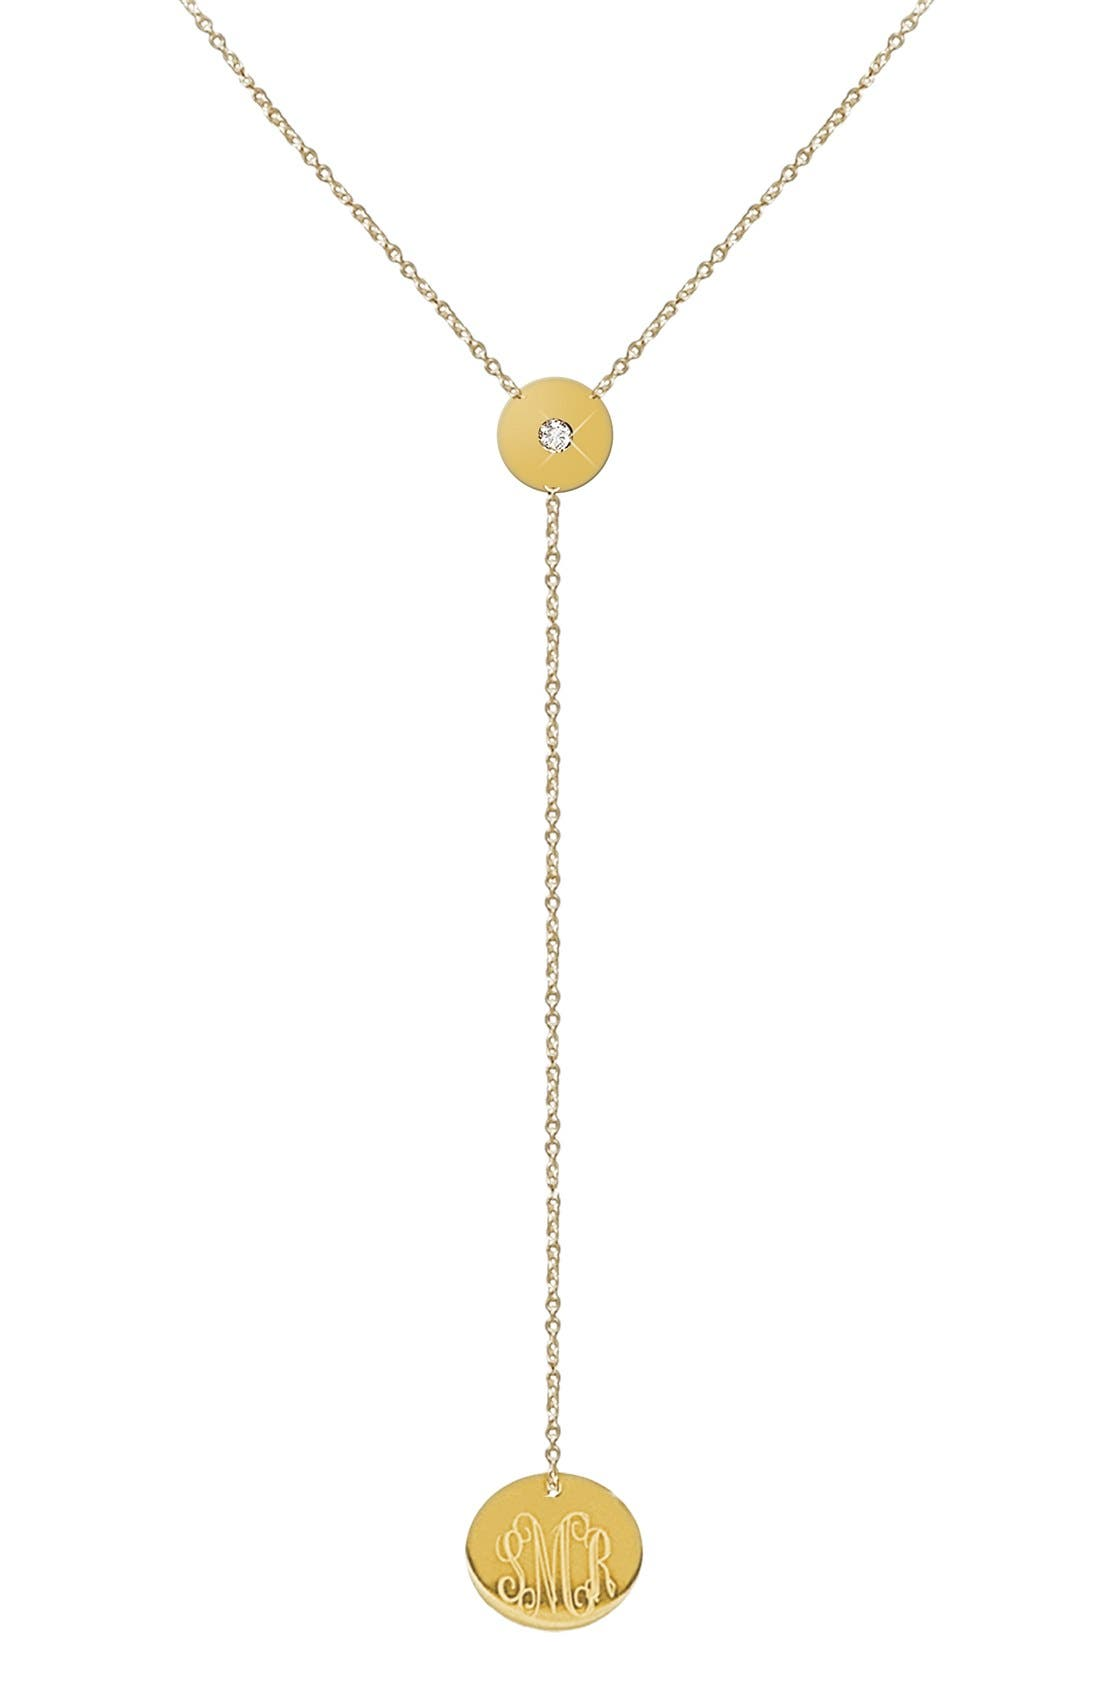 Diamond & Personalized Monogram Y-Necklace,                             Main thumbnail 1, color,                             Gold